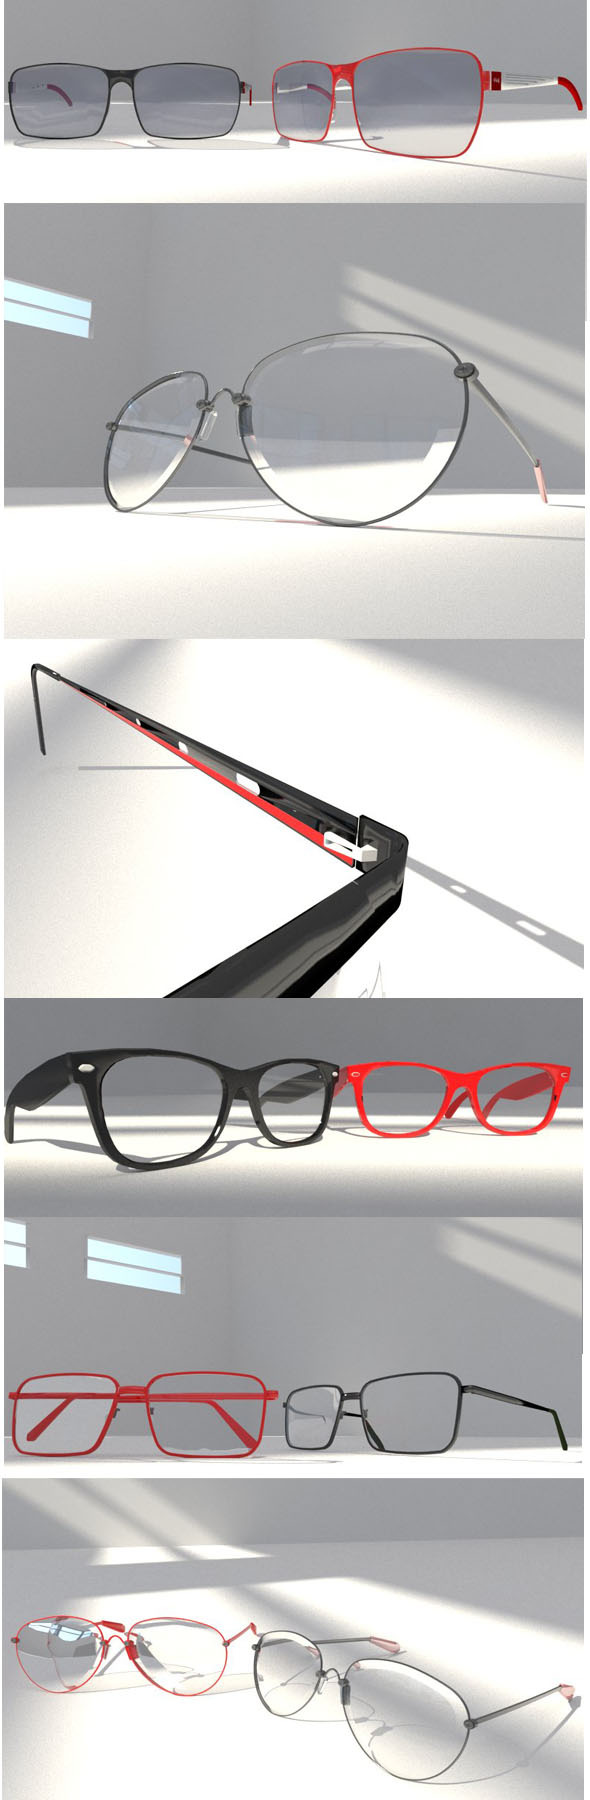 10 EYE glasses package - 3DOcean Item for Sale